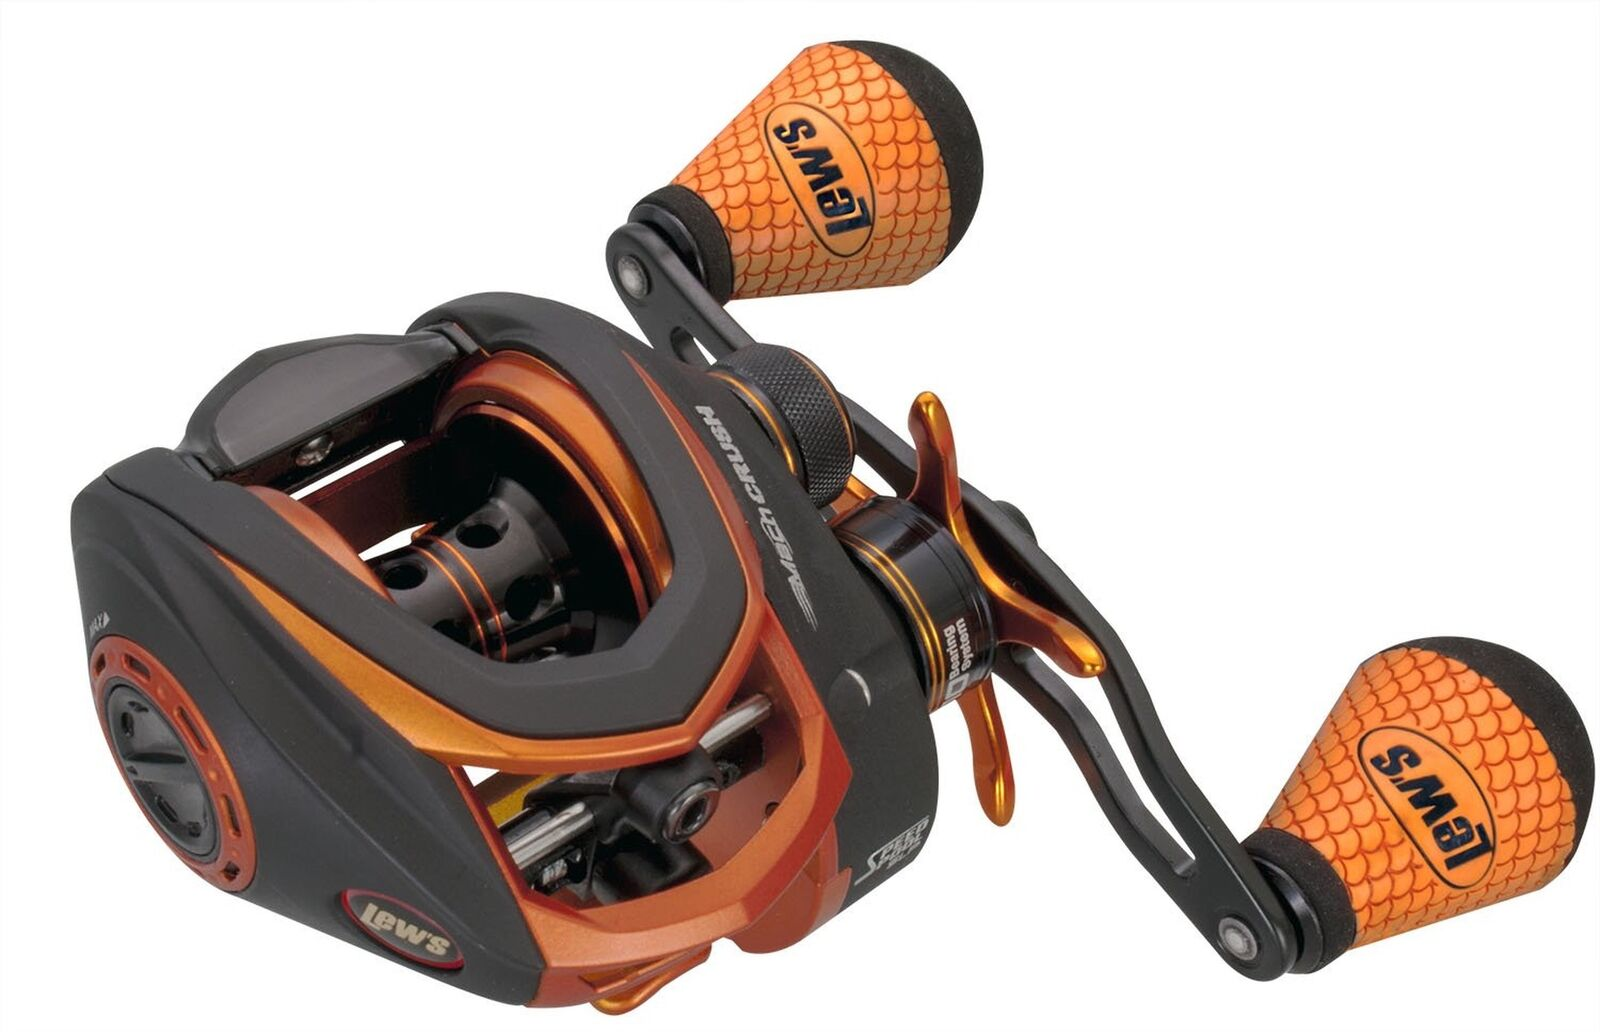 Lews Mach Crush Speed Spool Baitcast Reel LH 7.5 1